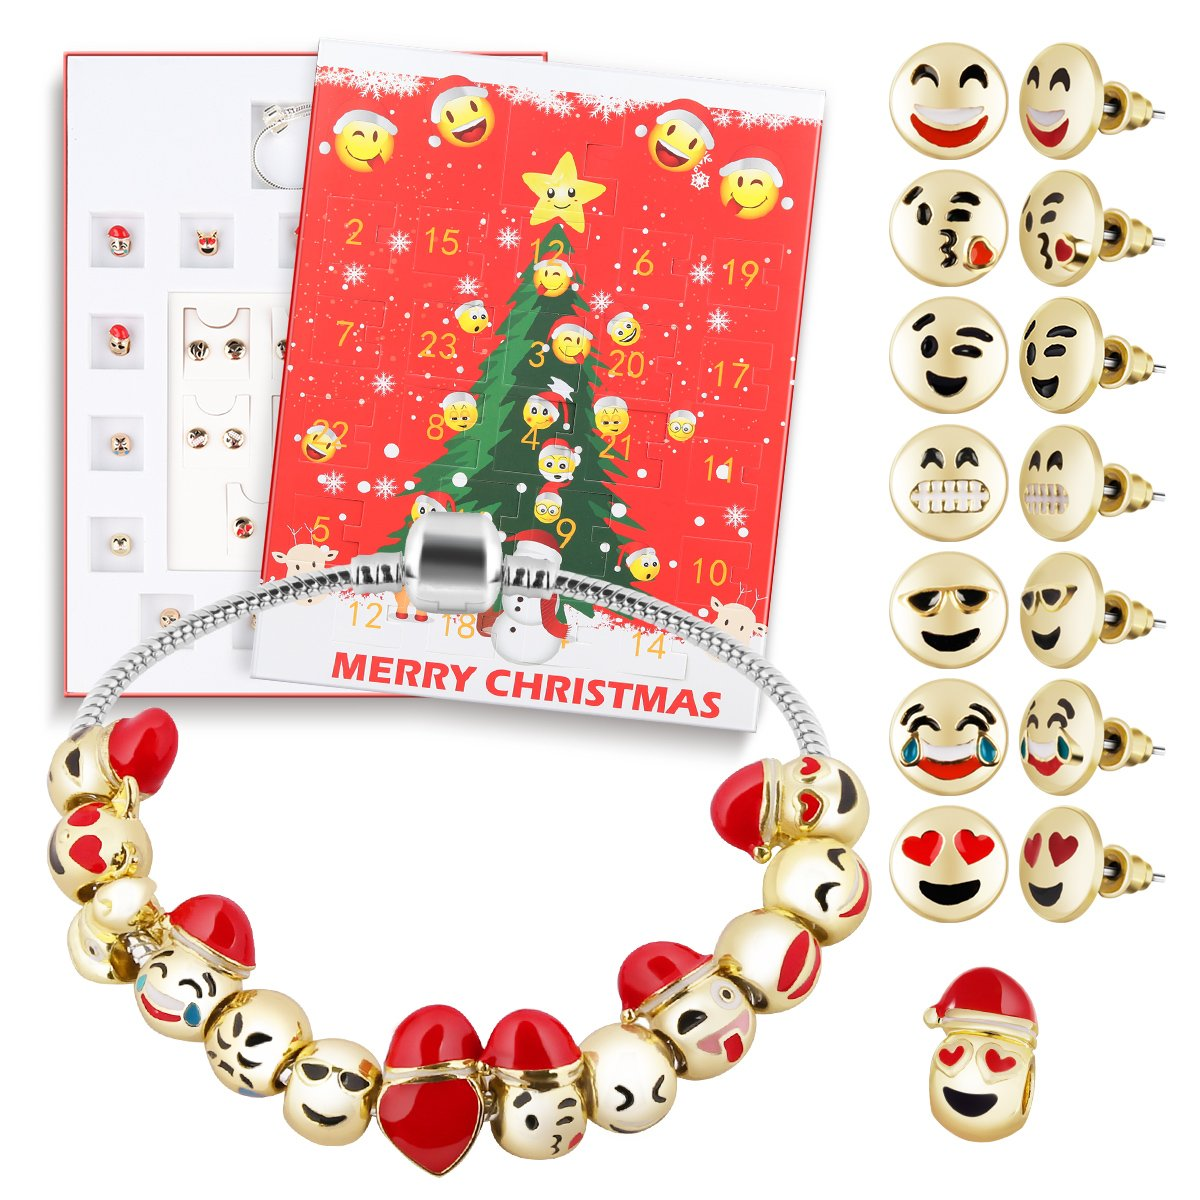 D-FantiX Christmas Countdown Calendar 2018 Women Girls DIY Jewelry Advent Calendar 24 Days Collection with Bracelet Emoji Beads Ear Studs Gift Set AM-HG209-N